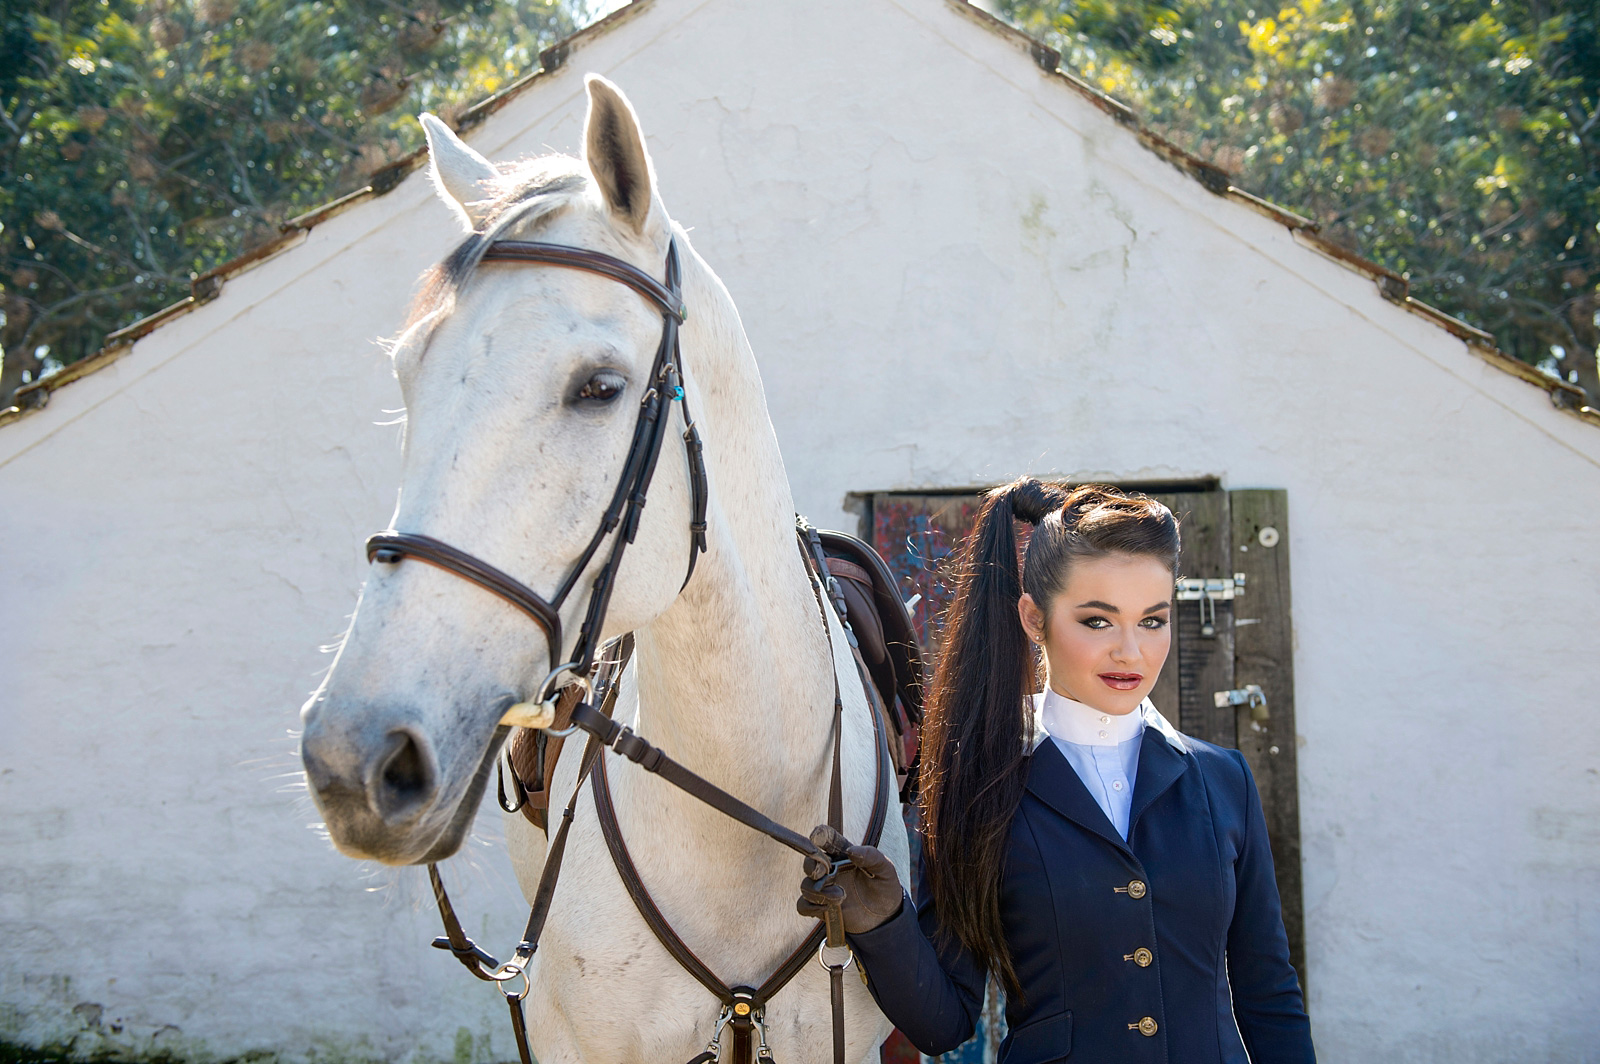 Girl with horse in riding gear